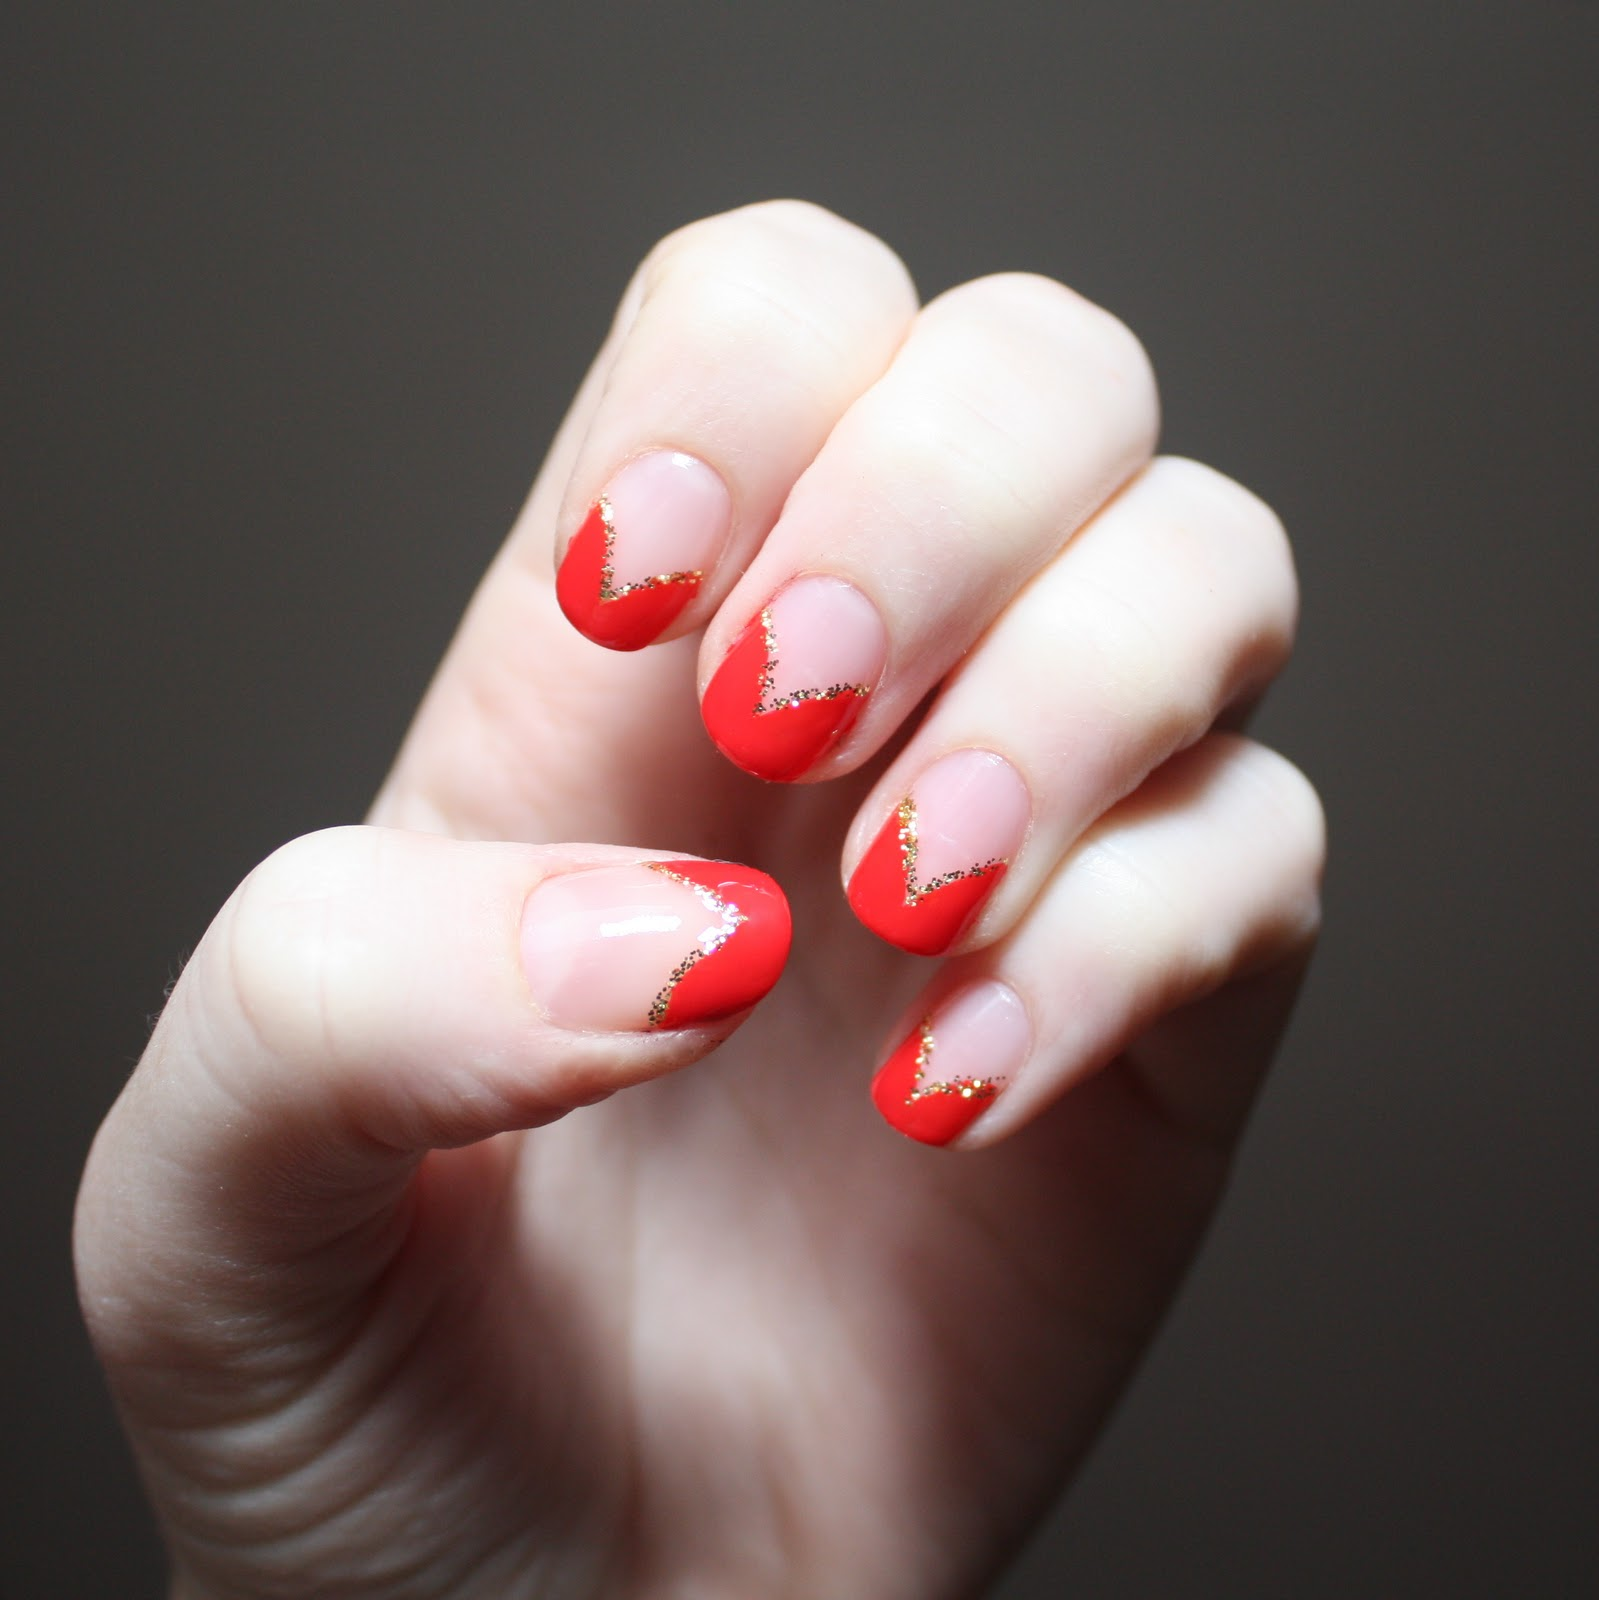 Red Nail Polish Lana Del Rey: Beauty School Dropouts: Lana Del Rey's Born To Die Manicure